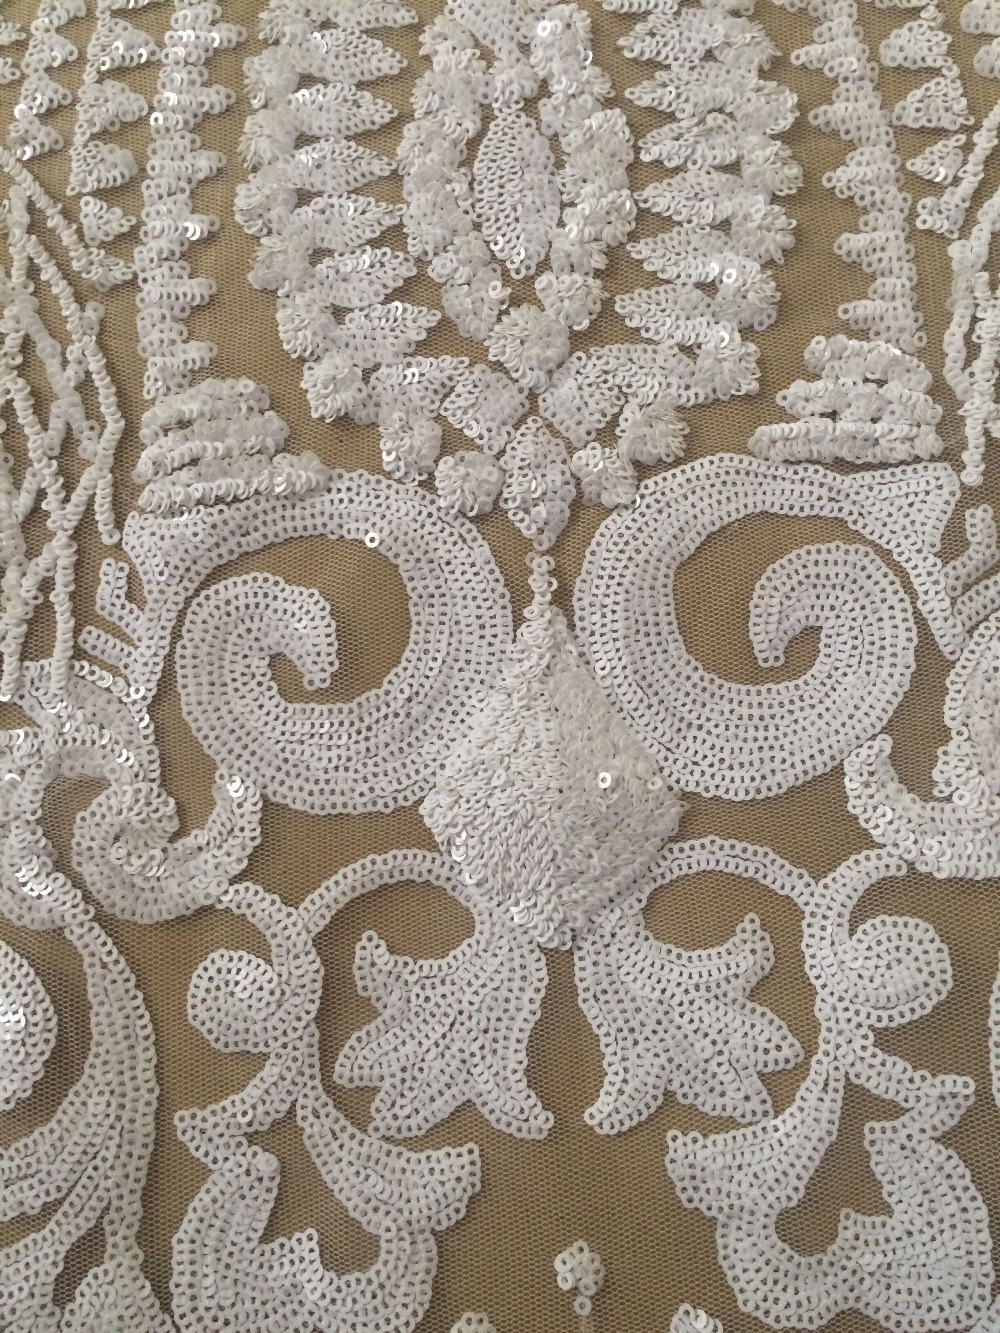 Sequins Lace Fabric For Wedding Dress In Pure White Color LJY80331 French  Net Fabric For Nice Dress In Lace From Home U0026 Garden On Aliexpress.com |  Alibaba ...